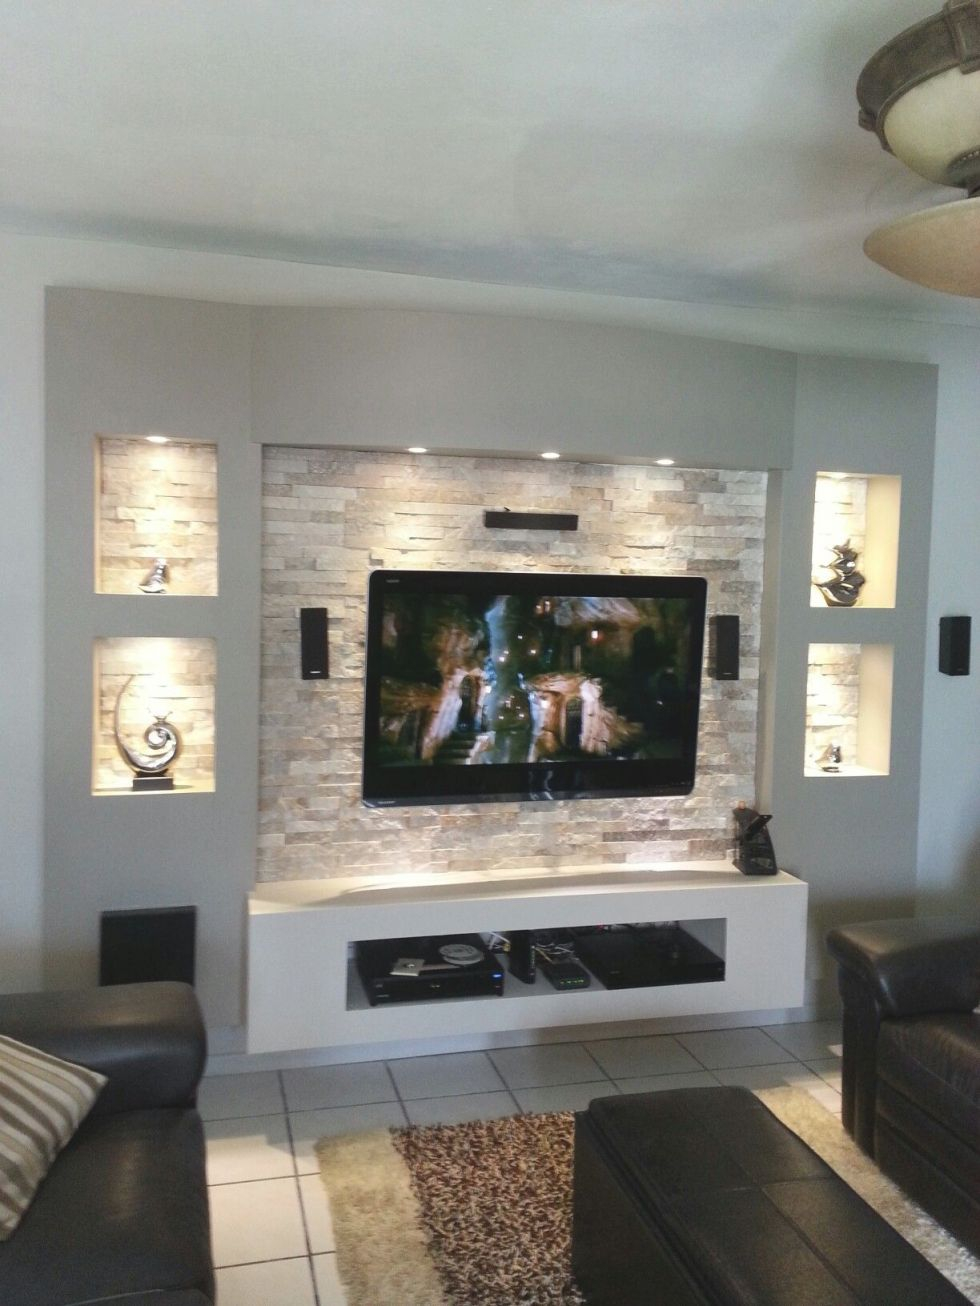 نطاق استدعاء نصيحة Modern Tv Stand Decor Findlocal Drivewayrepair Com